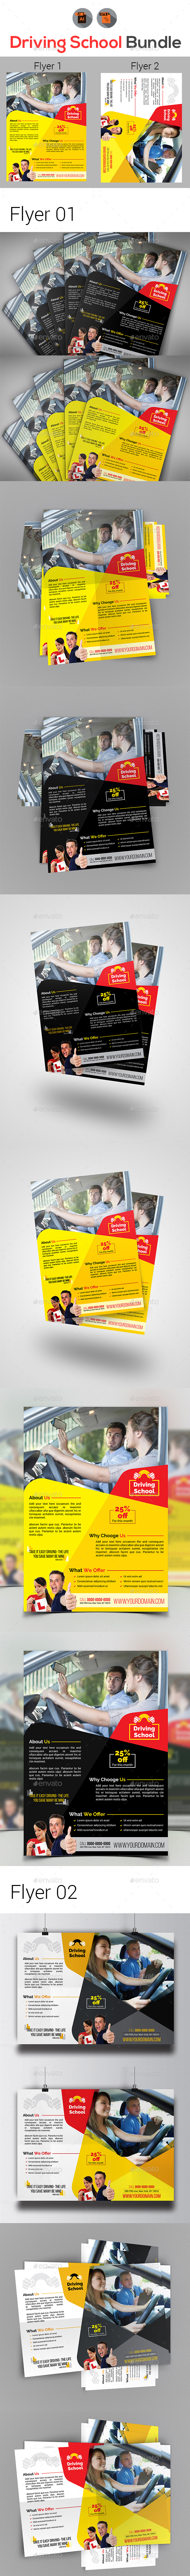 Driving School Flyers Bundle - Flyers Print Templates